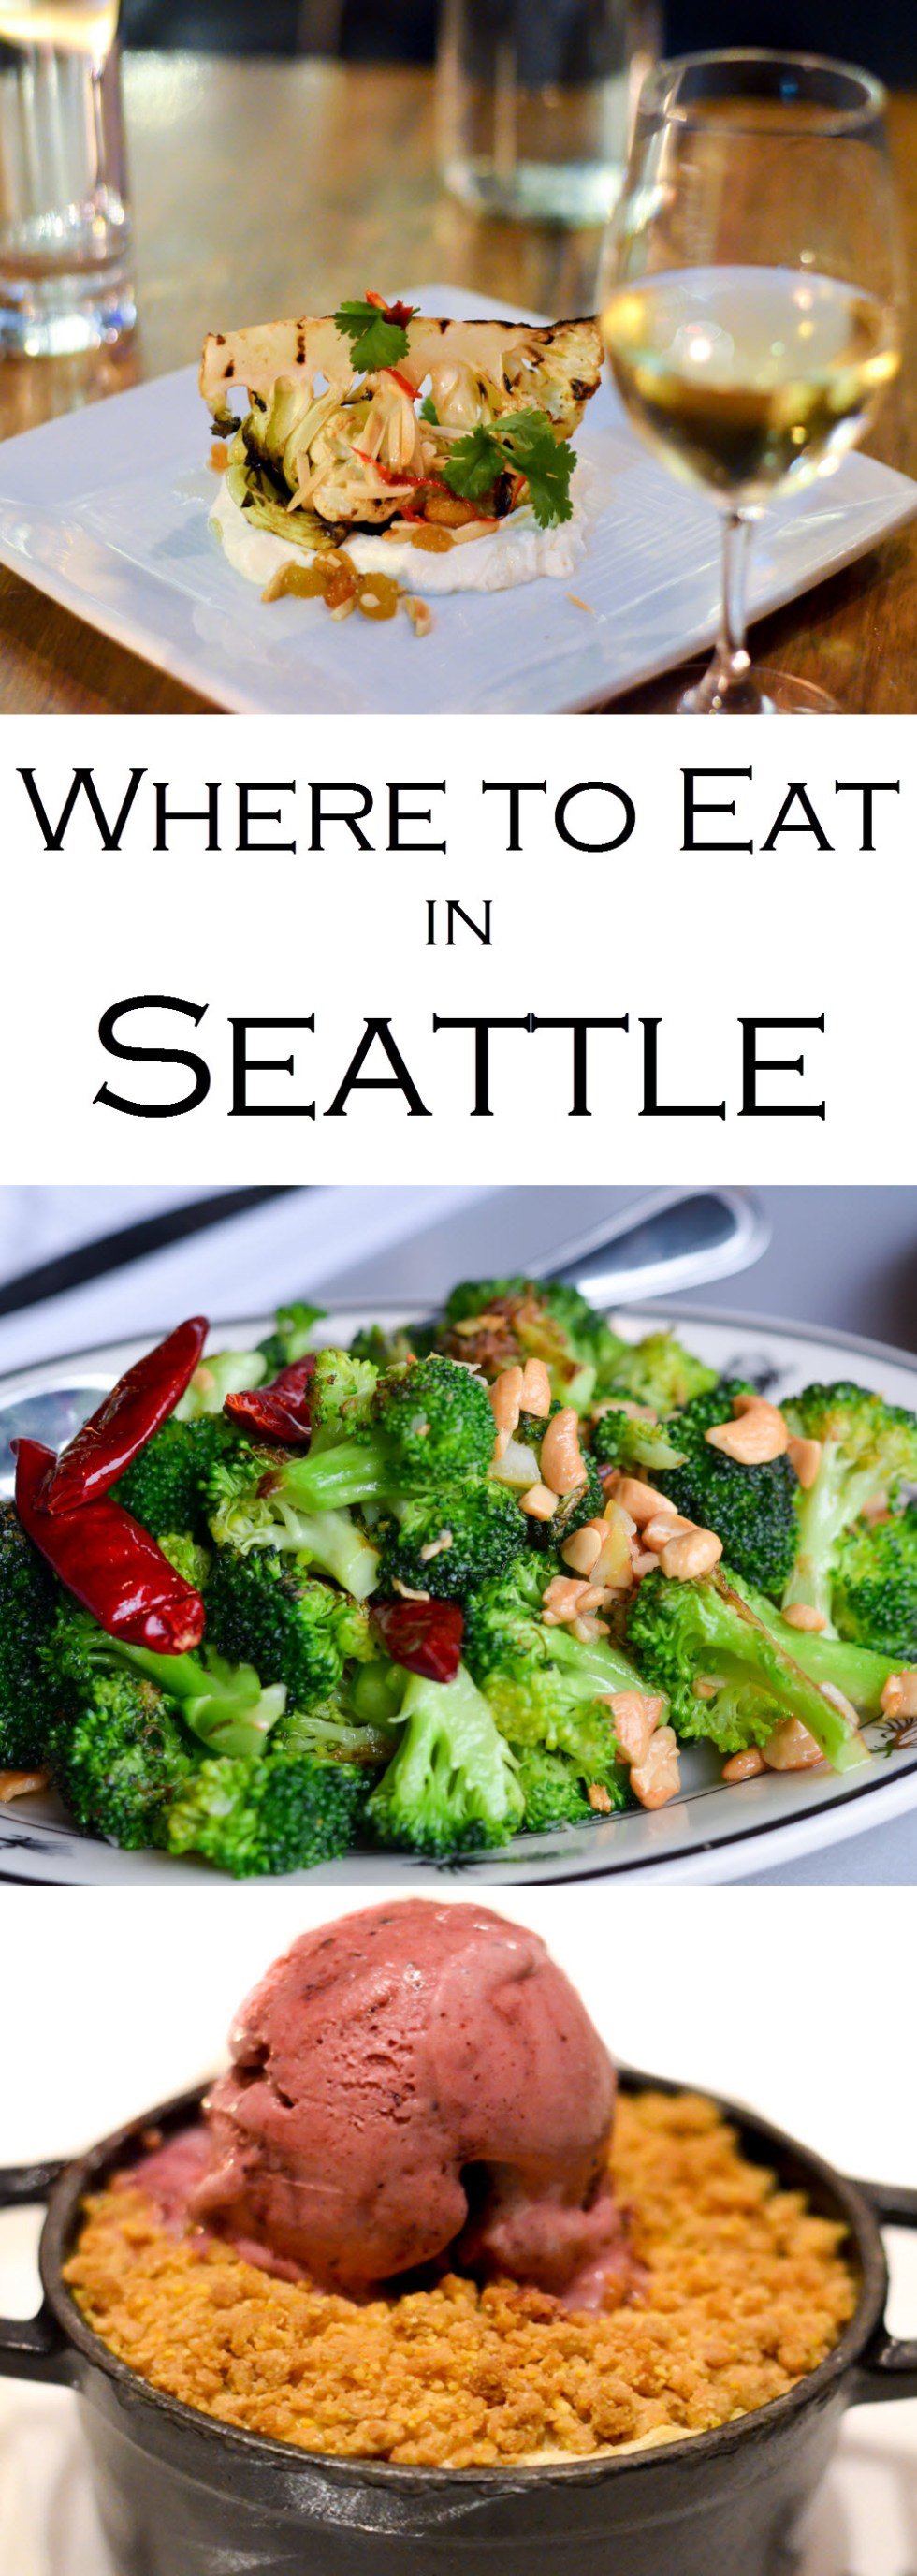 Where to Eat in Seattle | Food + Travel Blogger Recommendations